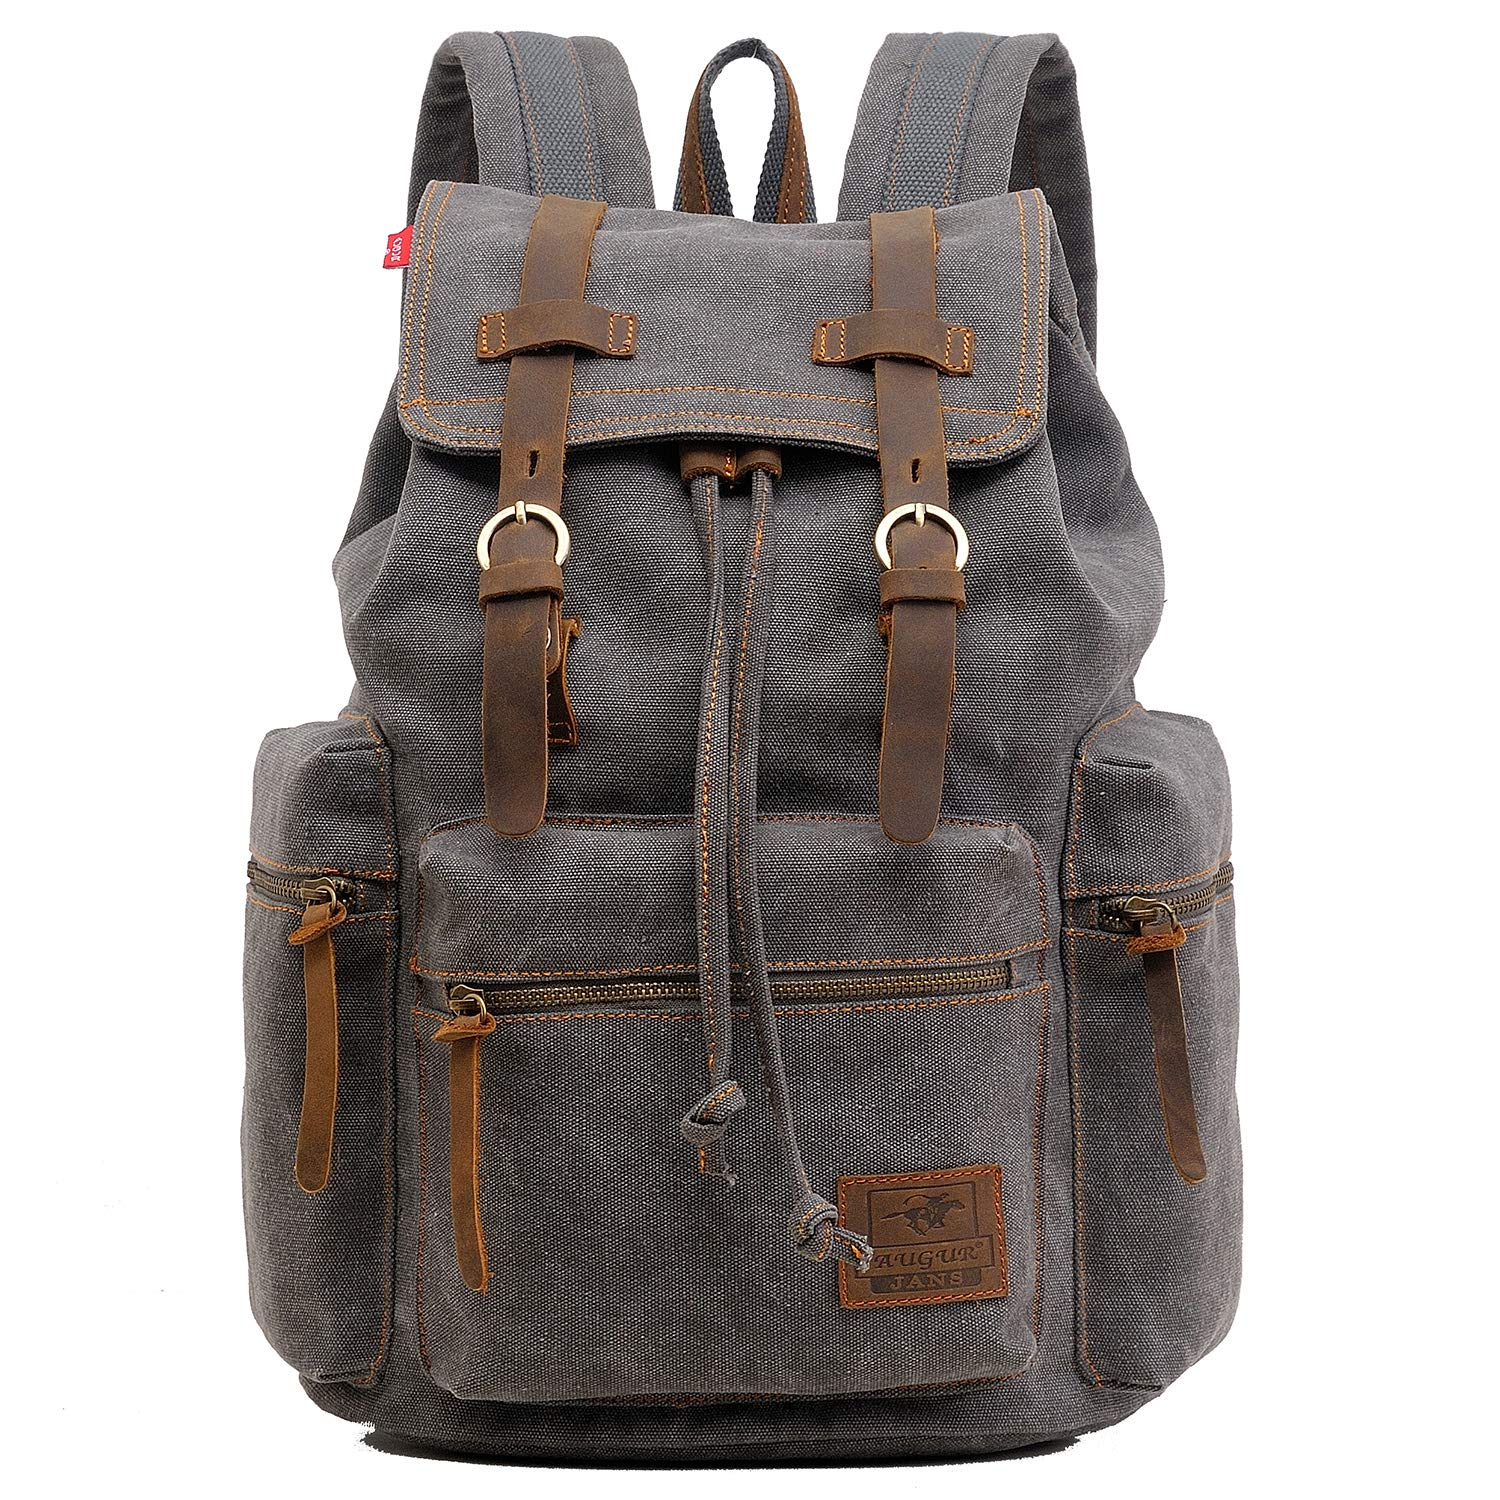 ONEB Laptop Canvas Backpack Unisex Vintage Leather Casual Rucksack School  College Bags Satchel Bookbag Large Capacity Hiking Travel Rucksack Business  ... 107e247868f5e